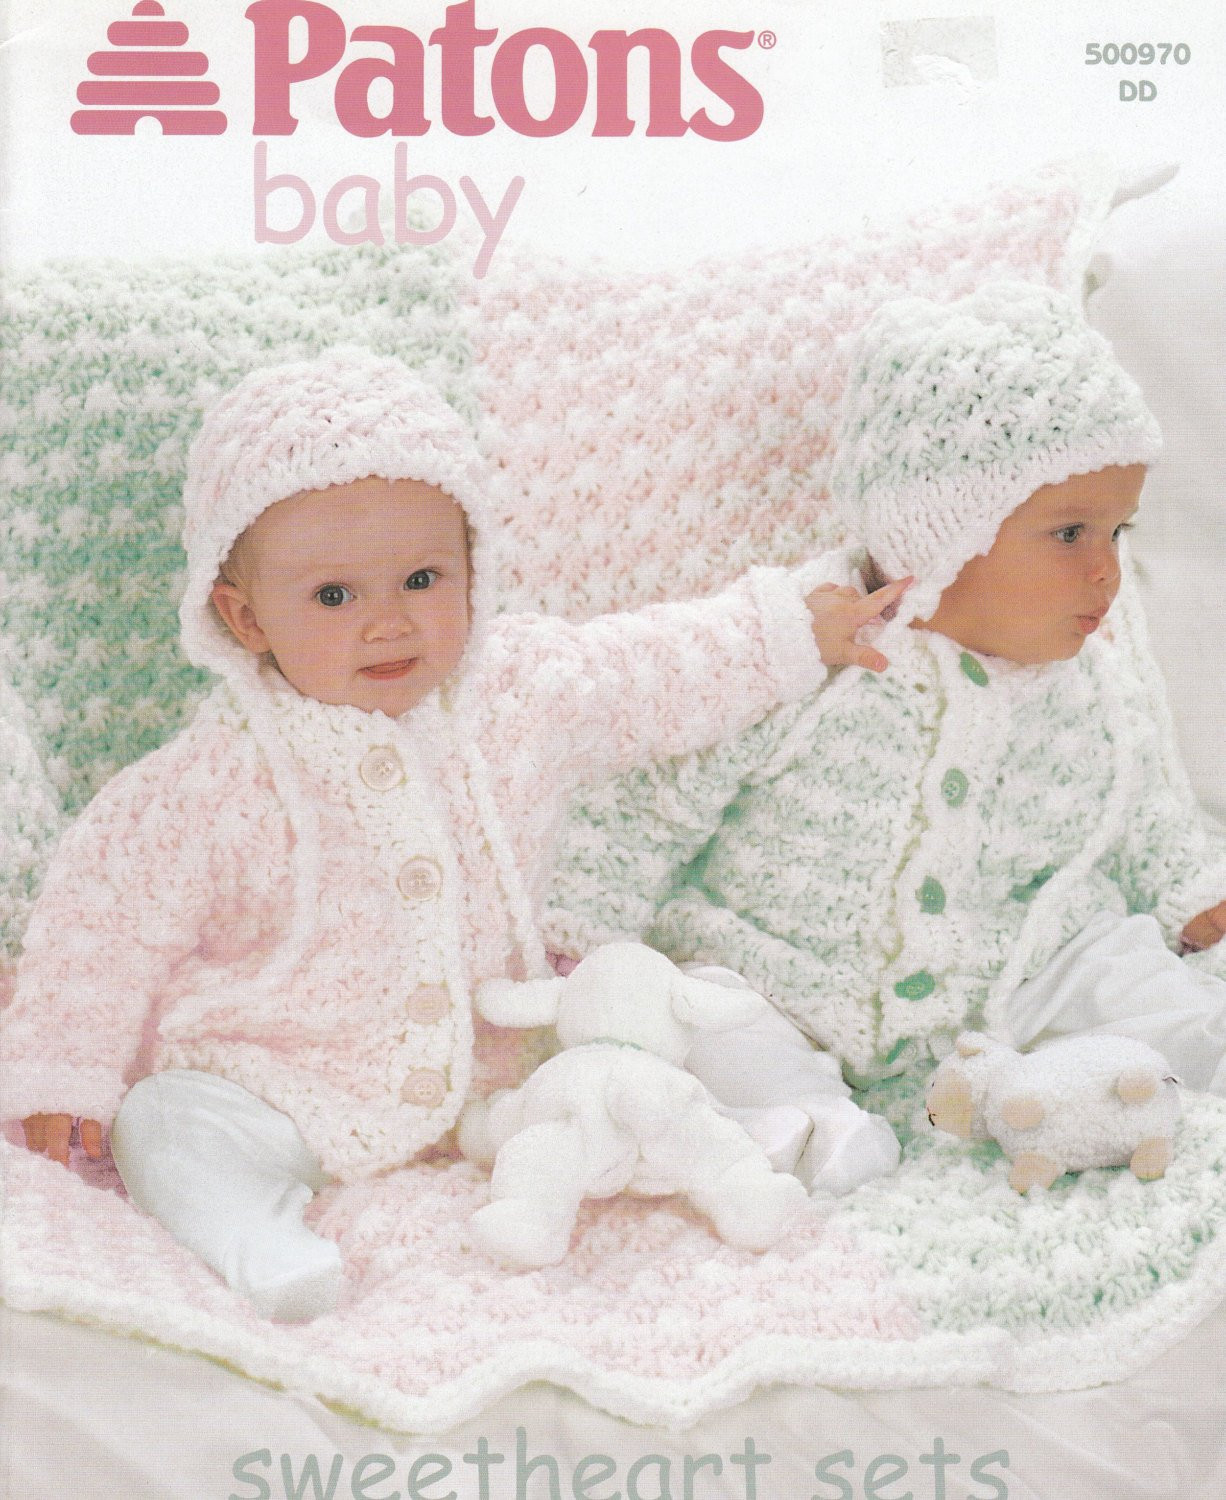 Baby Sweater Patterns Awesome Baby Sweater Blanket & Hat Knitting Pattern Patons Baby Of Beautiful 41 Images Baby Sweater Patterns